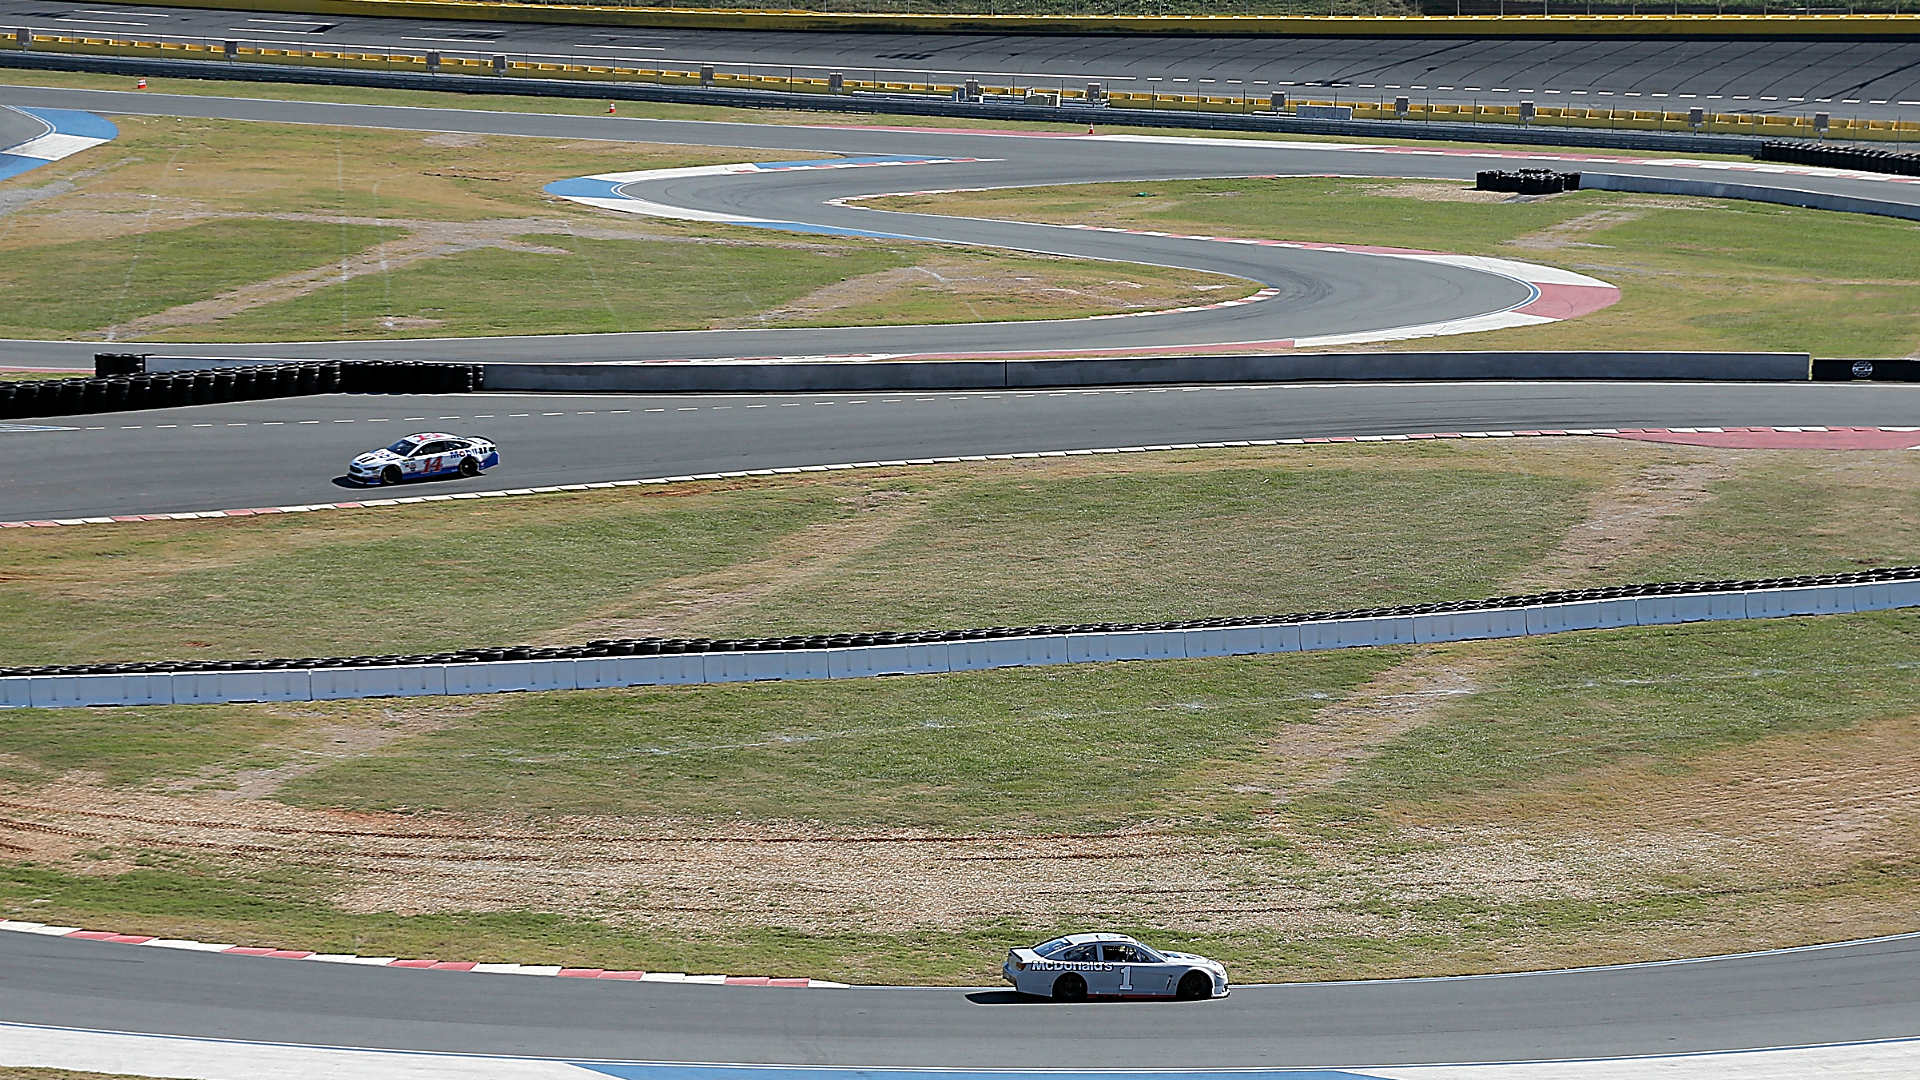 Tweaks to Charlotte's road course should make Playoff race faster, more intense